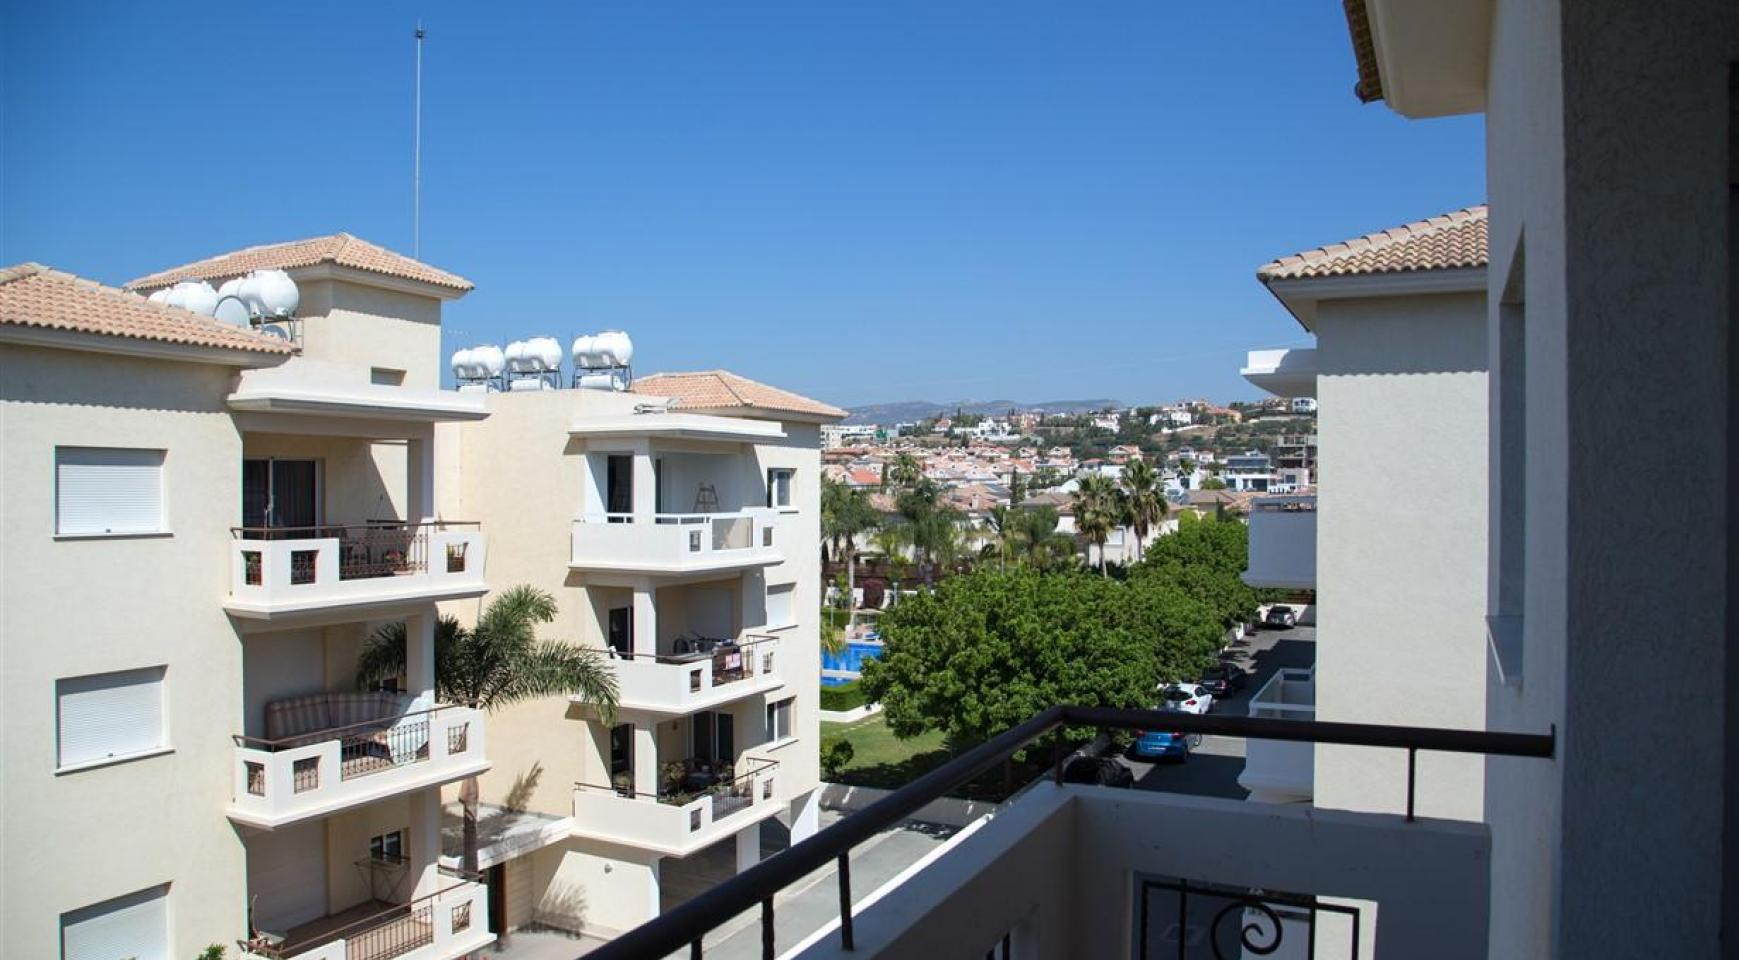 Αντίγραφο Luxury 2 Bedroom Apartment Mesogios Iris 304 in the Tourist area near the Beach - 45